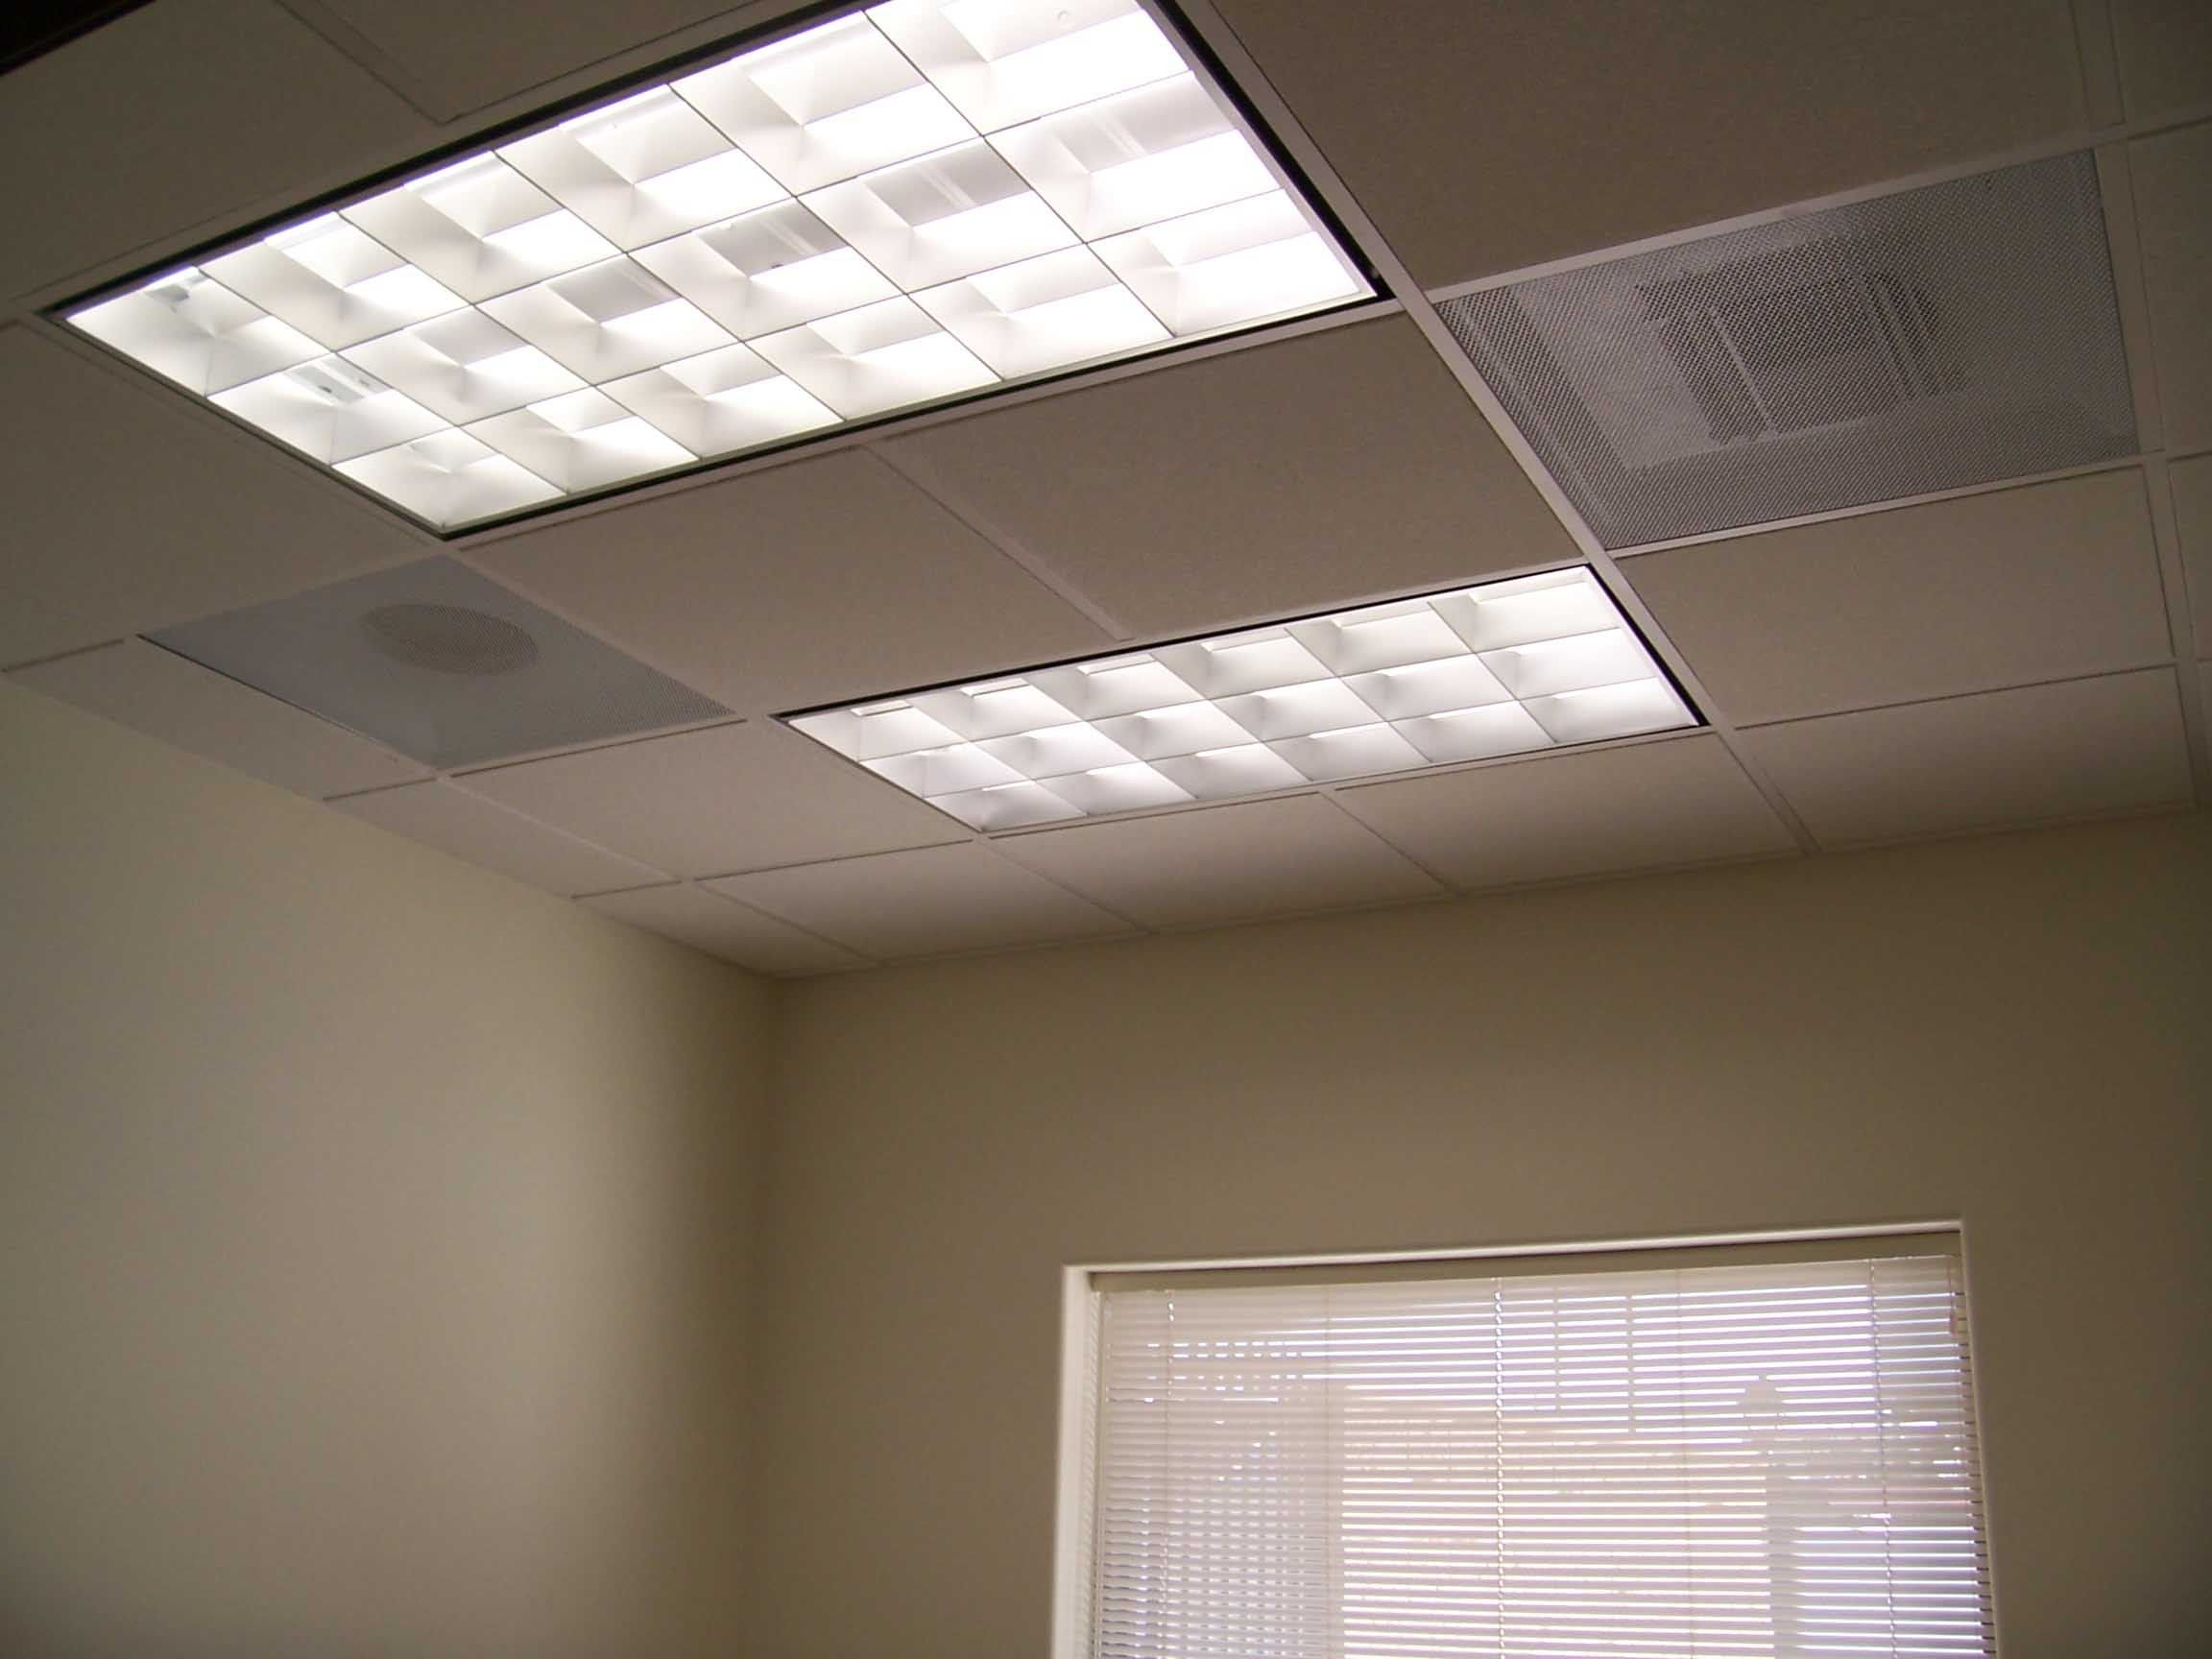 ceilings suspended concealed ceiling tiles grid lights pin